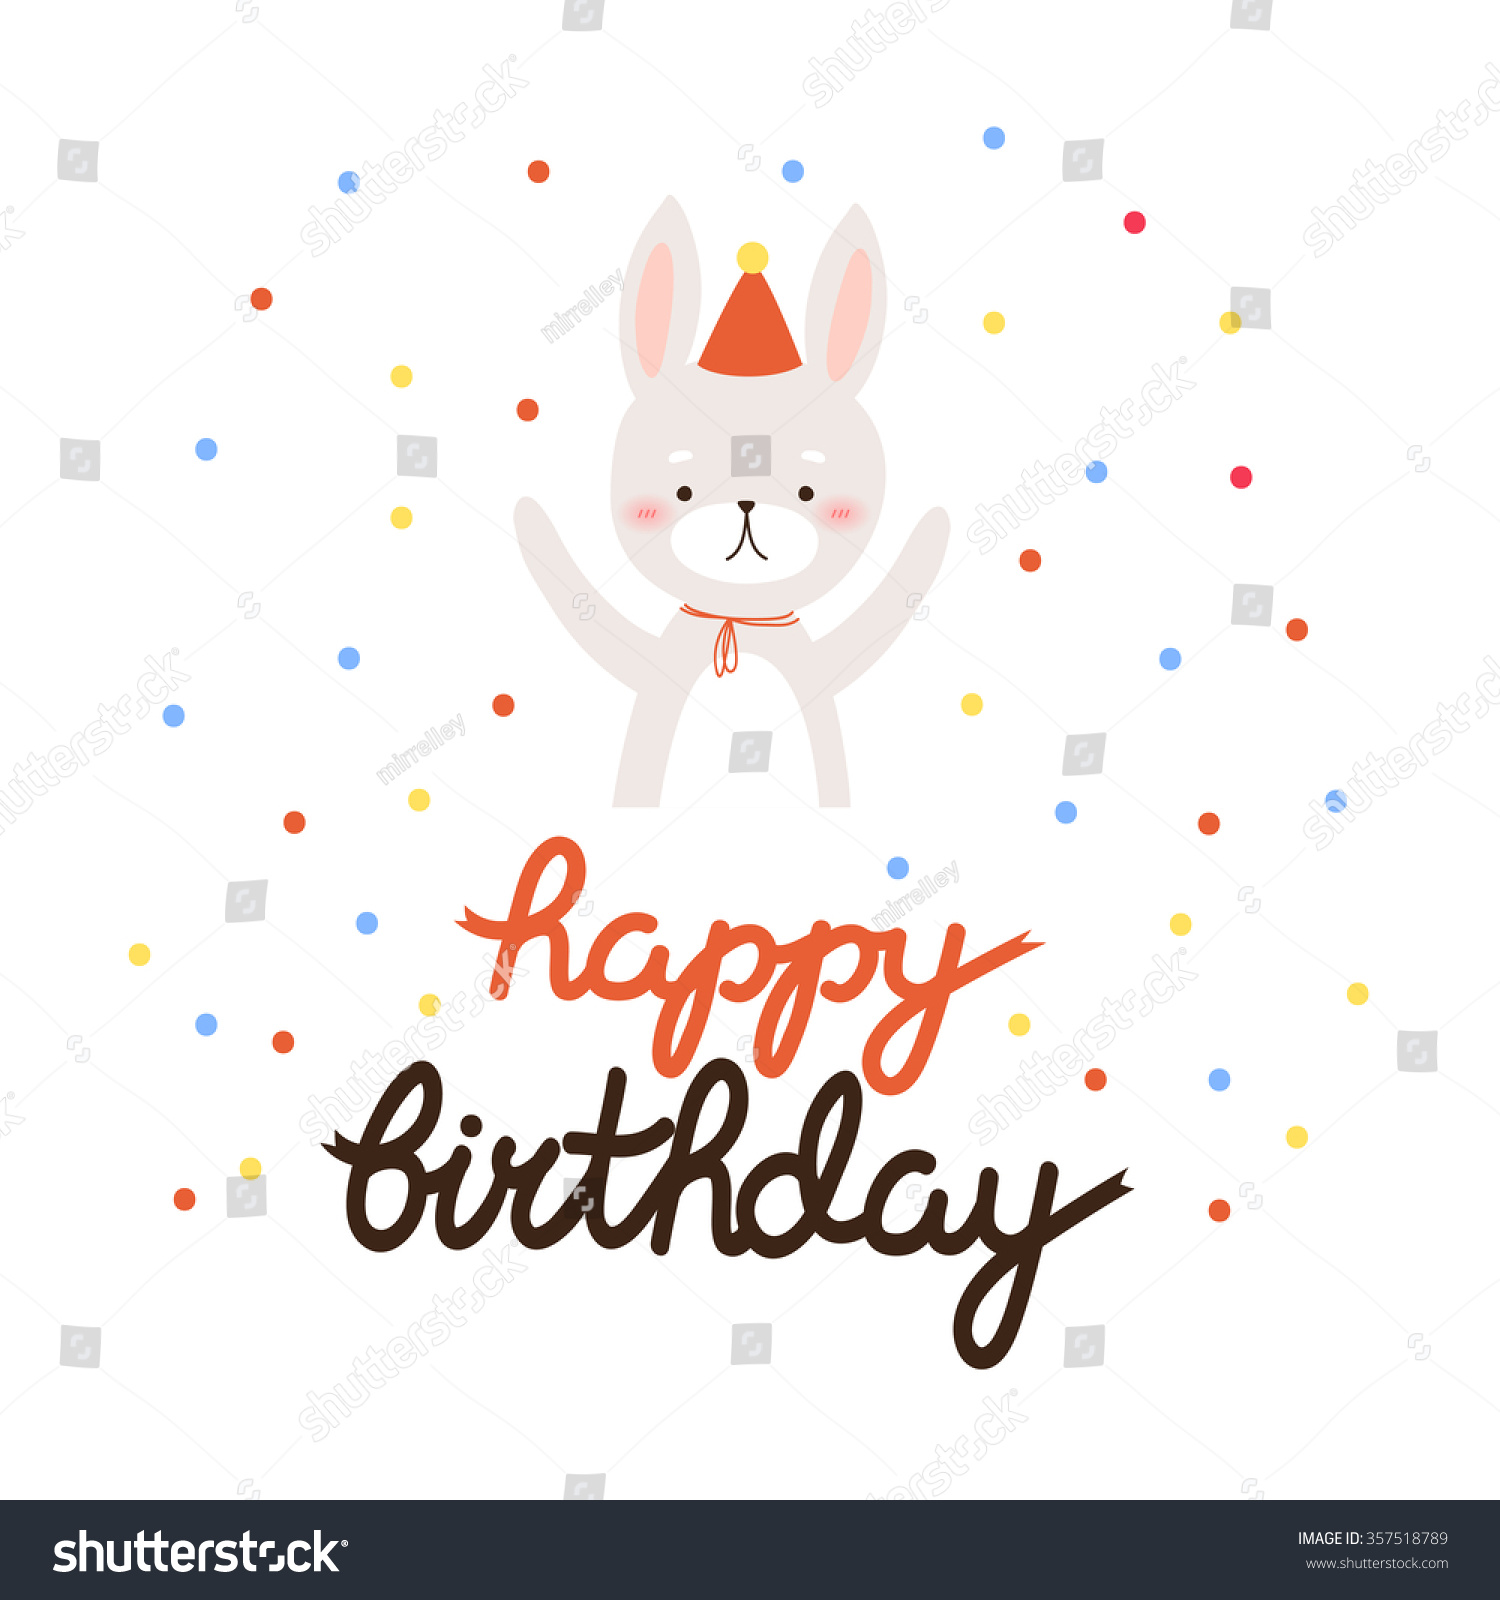 Illustration Of Cute Cartoon Bunny With Happy Birthday Text Message Can Be Used For Greeting Cards And Party Invitations Card Template